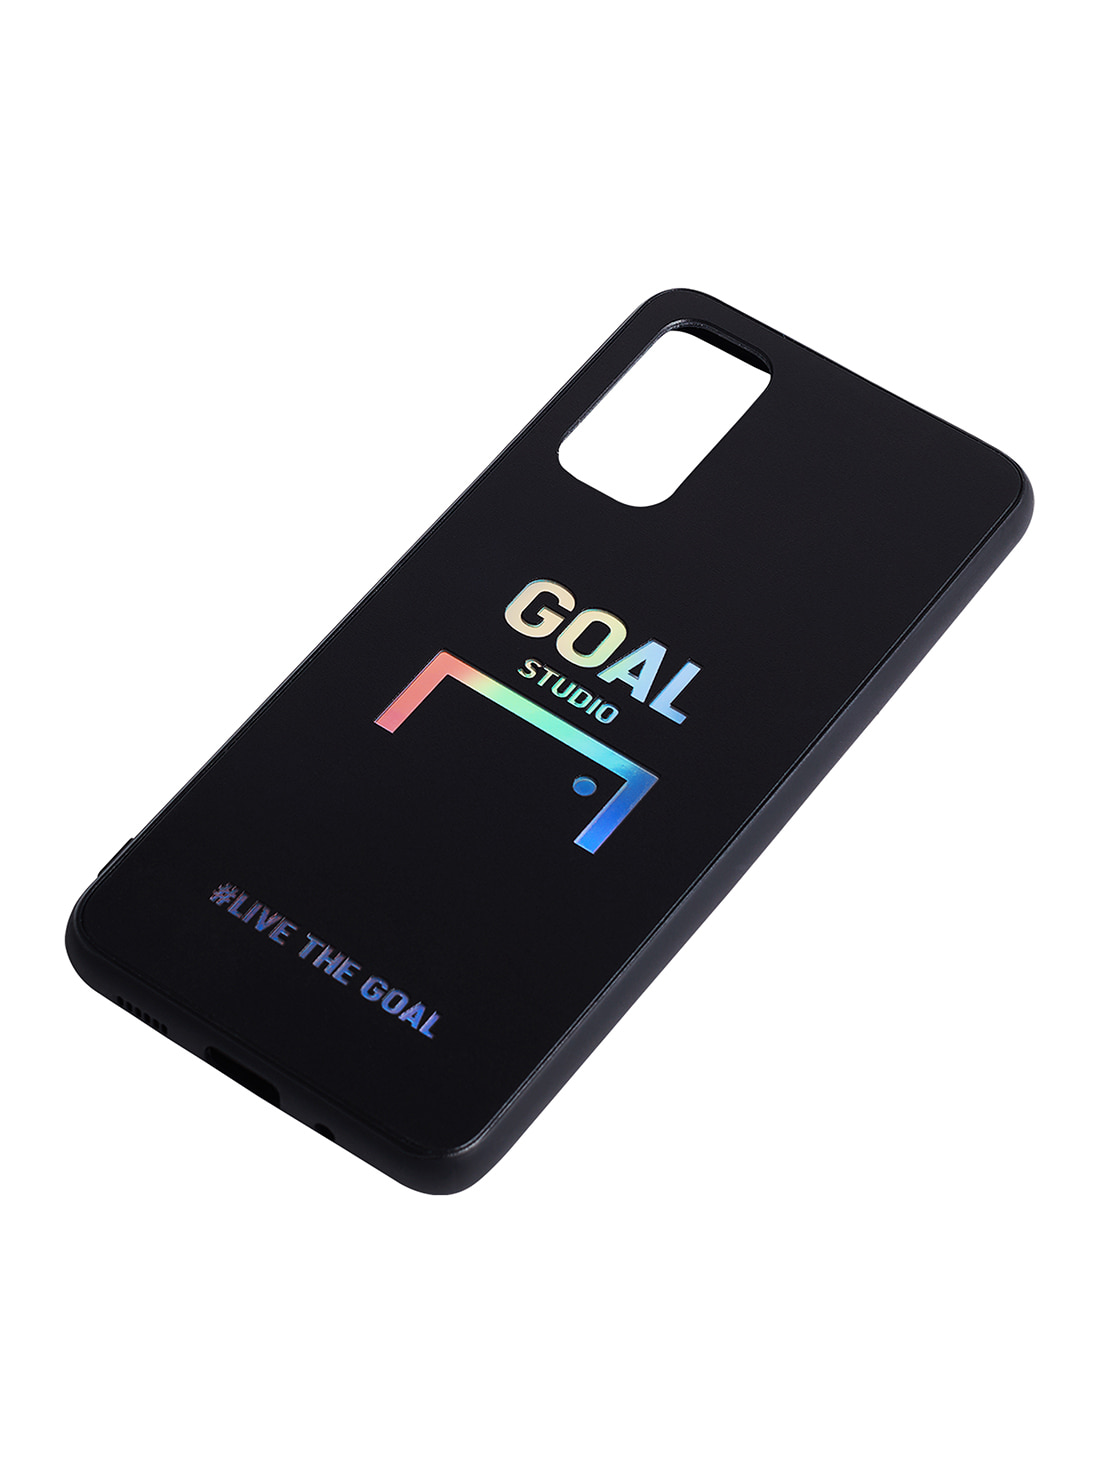 GOALSTUDIO HOLOGRAM PHONE CASE (Galaxy)